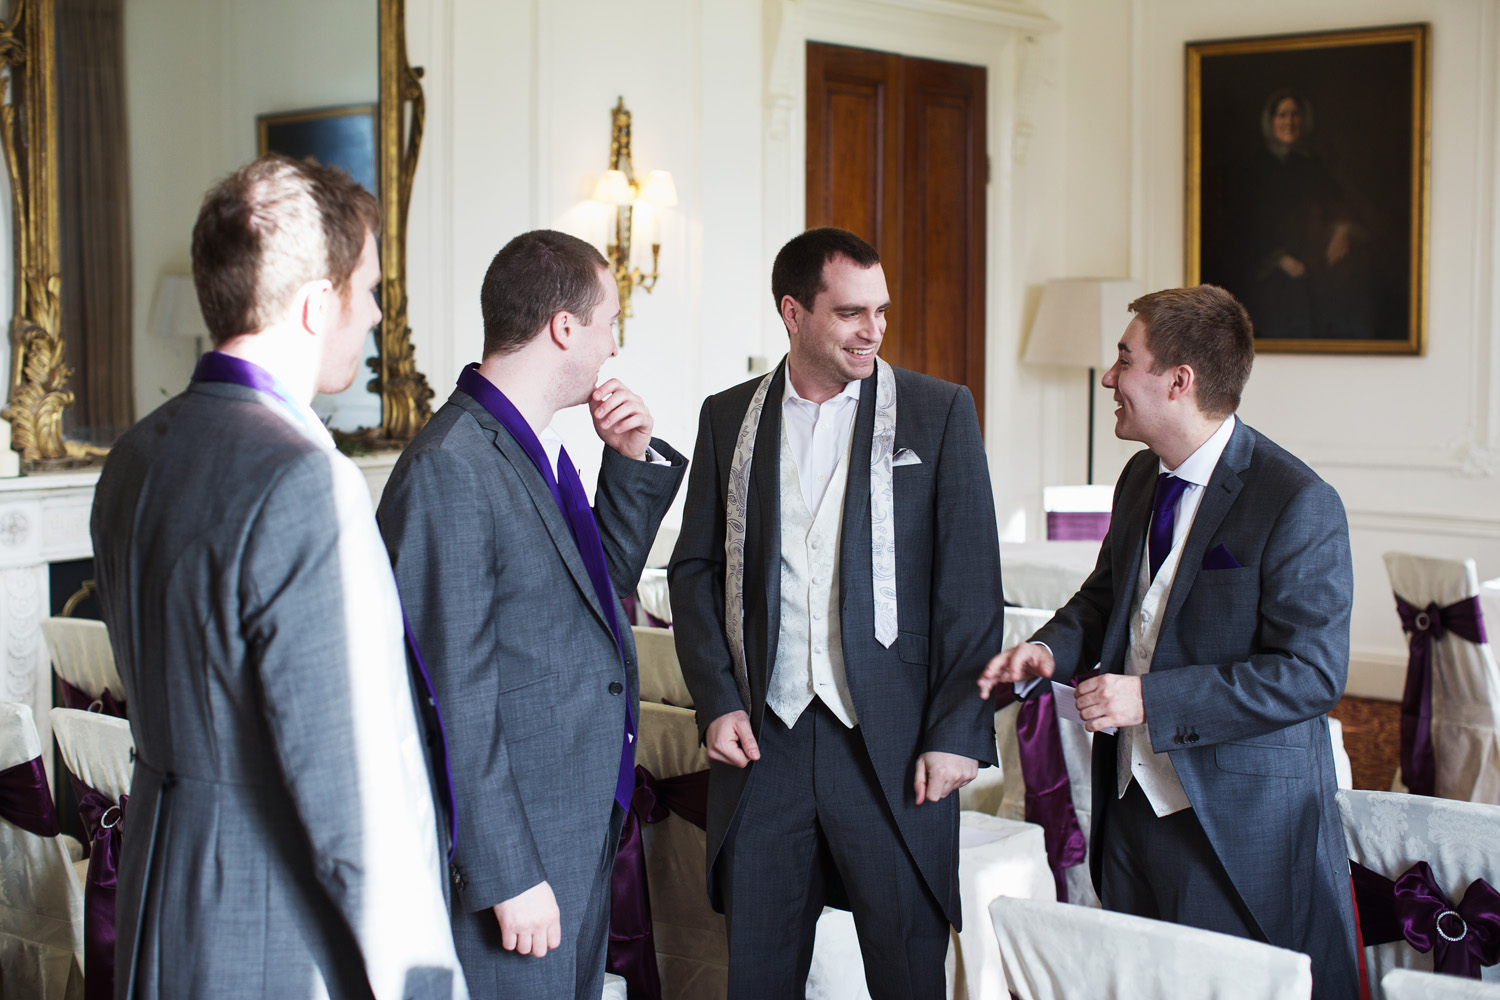 Taplow_House_Hotel_Wedding_Photographer_Maidenhead_019.jpg